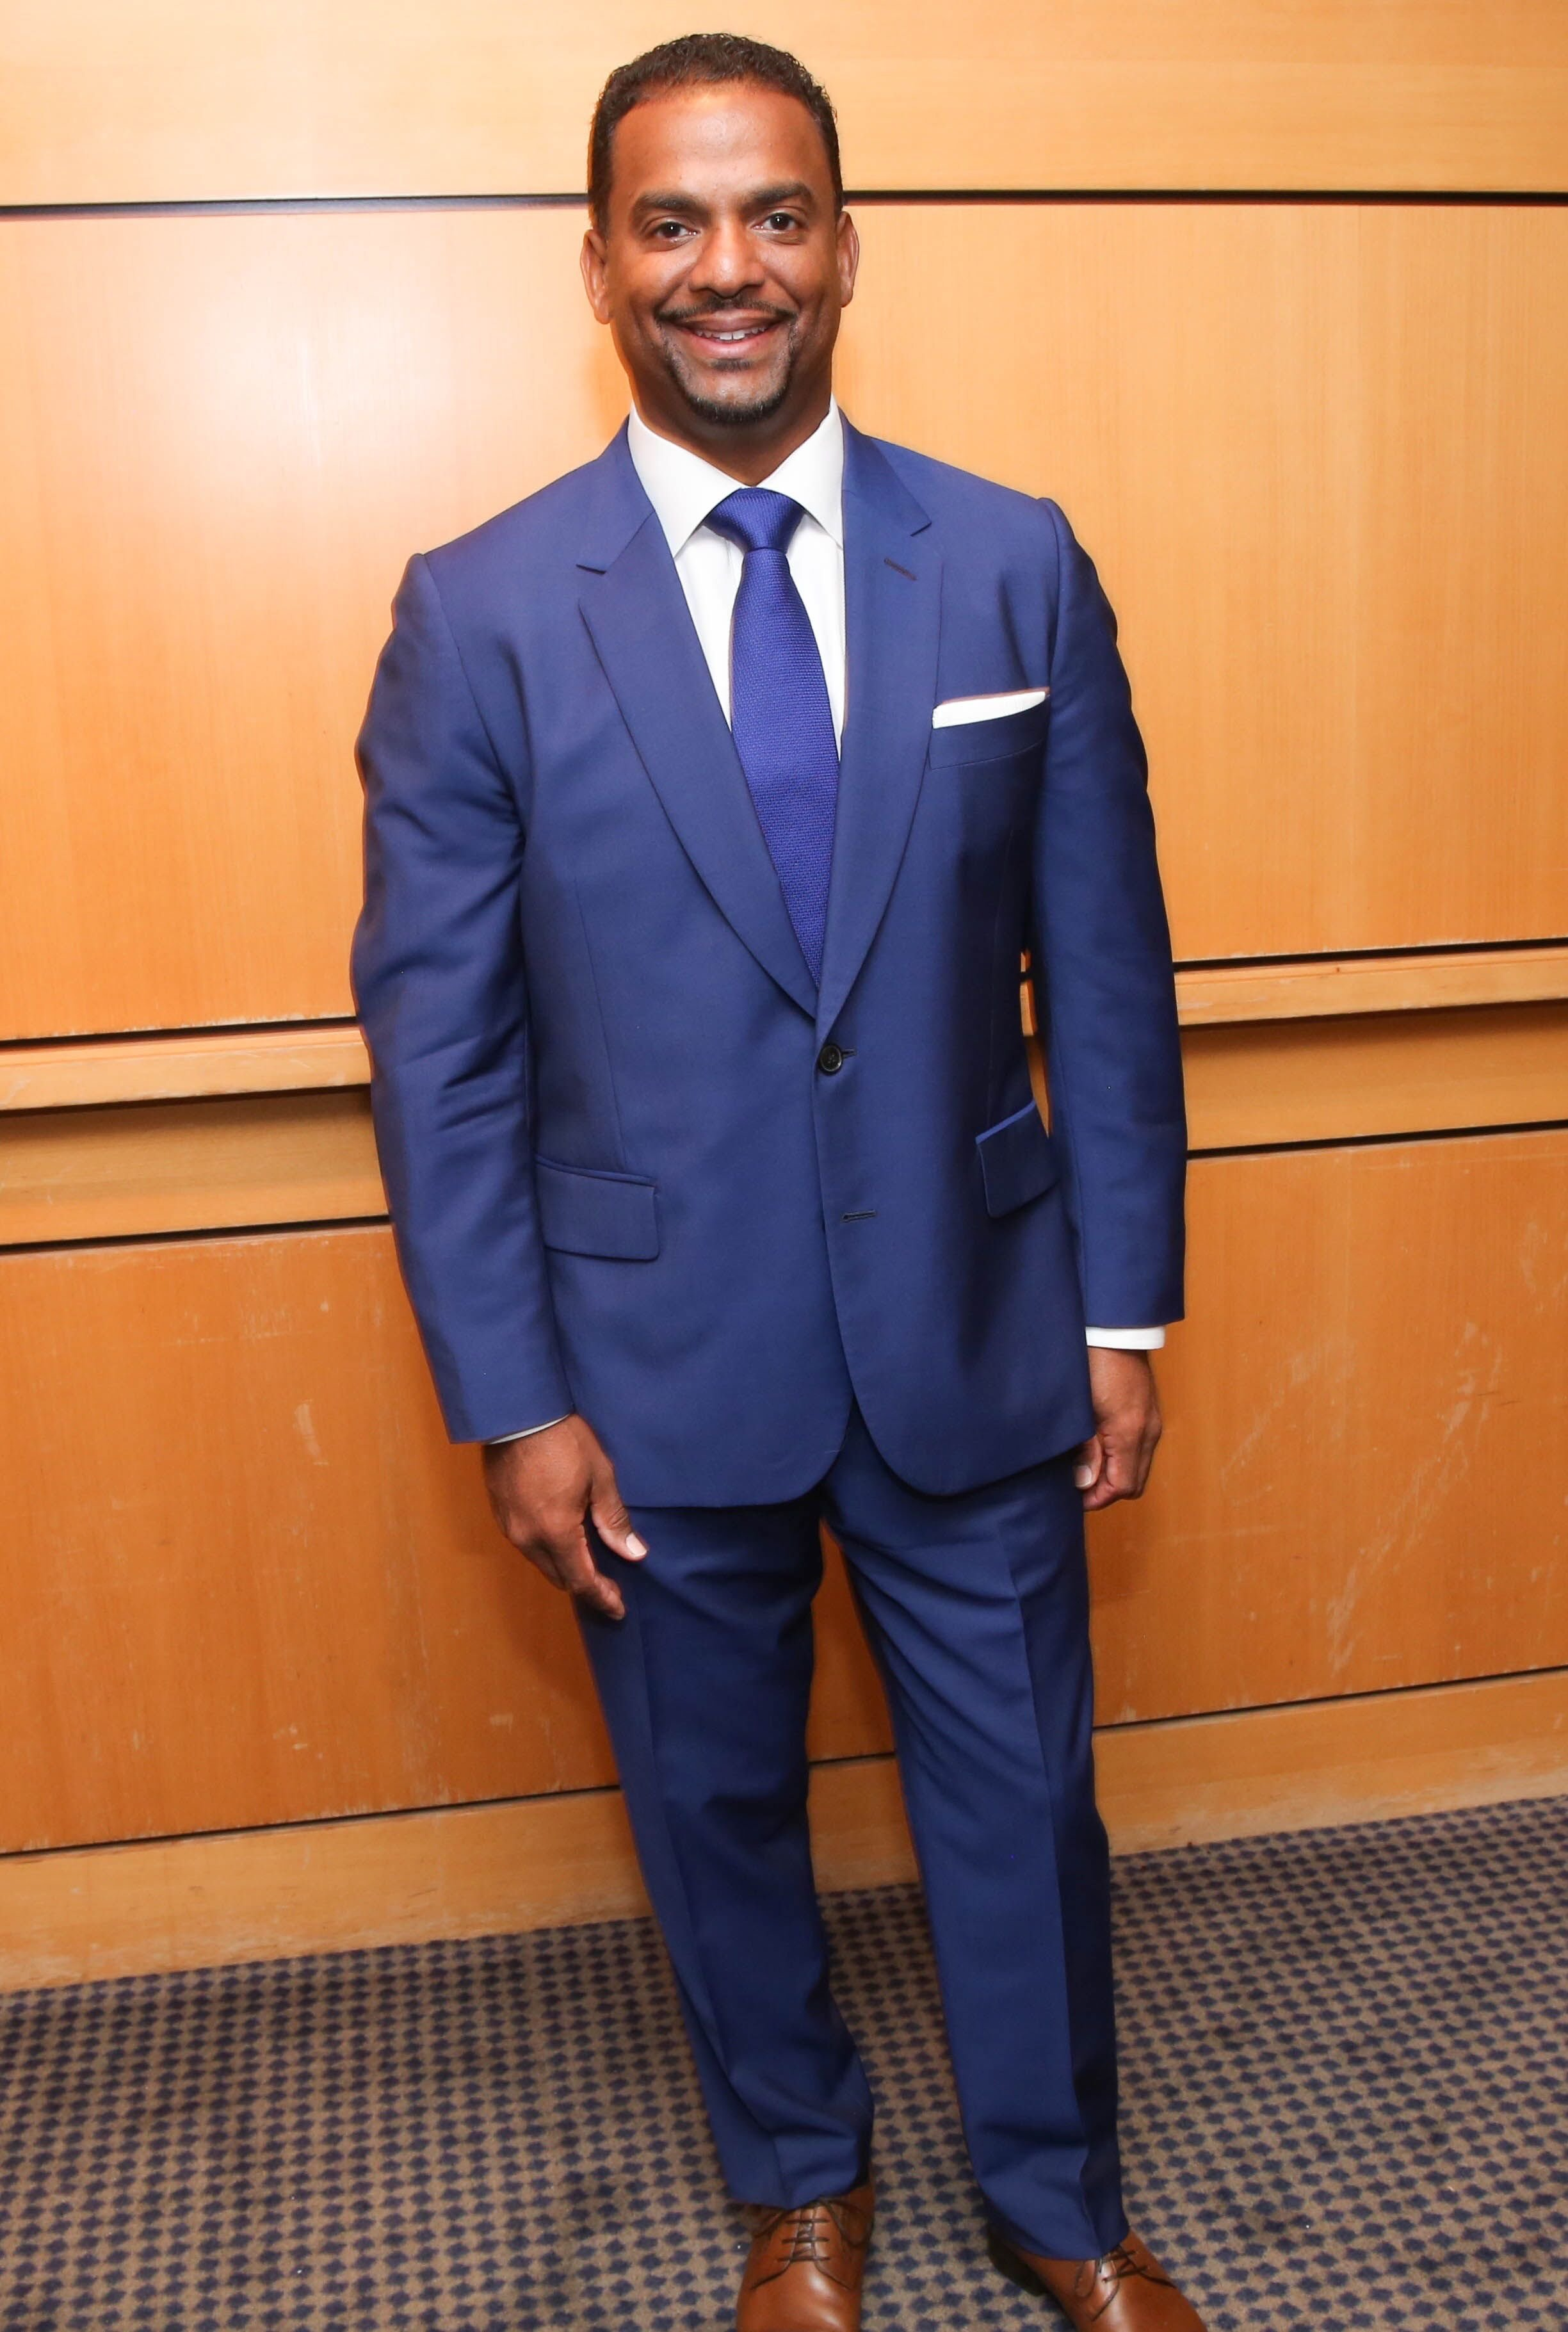 Alfonso Ribeiro attends The 35th Annual Caucus Awards Dinner at Skirball Cultural Center on December 3, 2017. | Photo: Getty Images